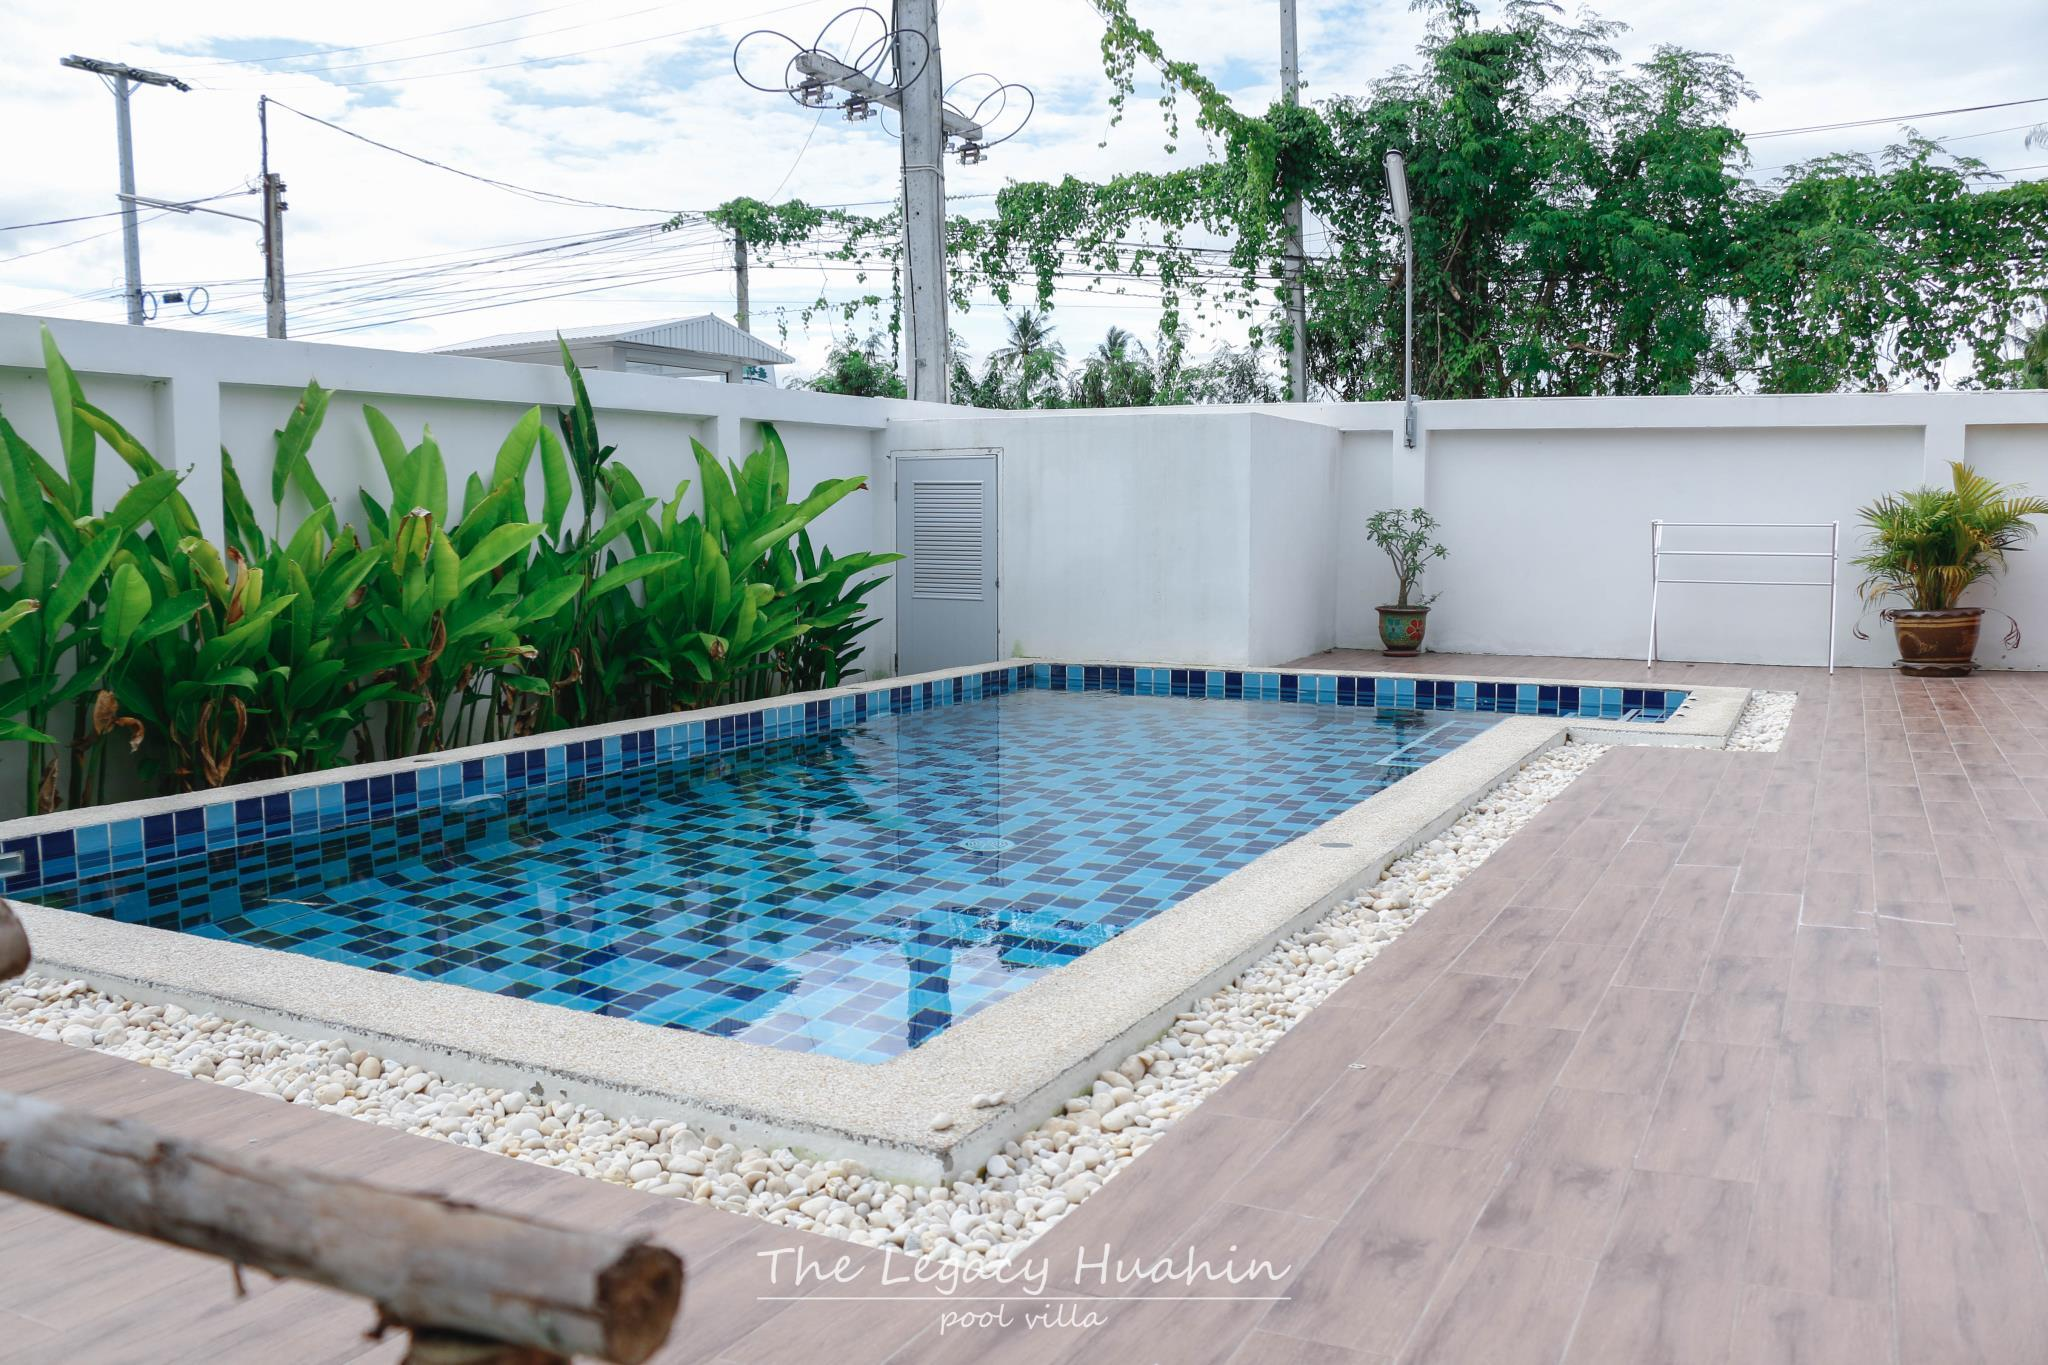 The Legacy Huahin Pool Villa Type D